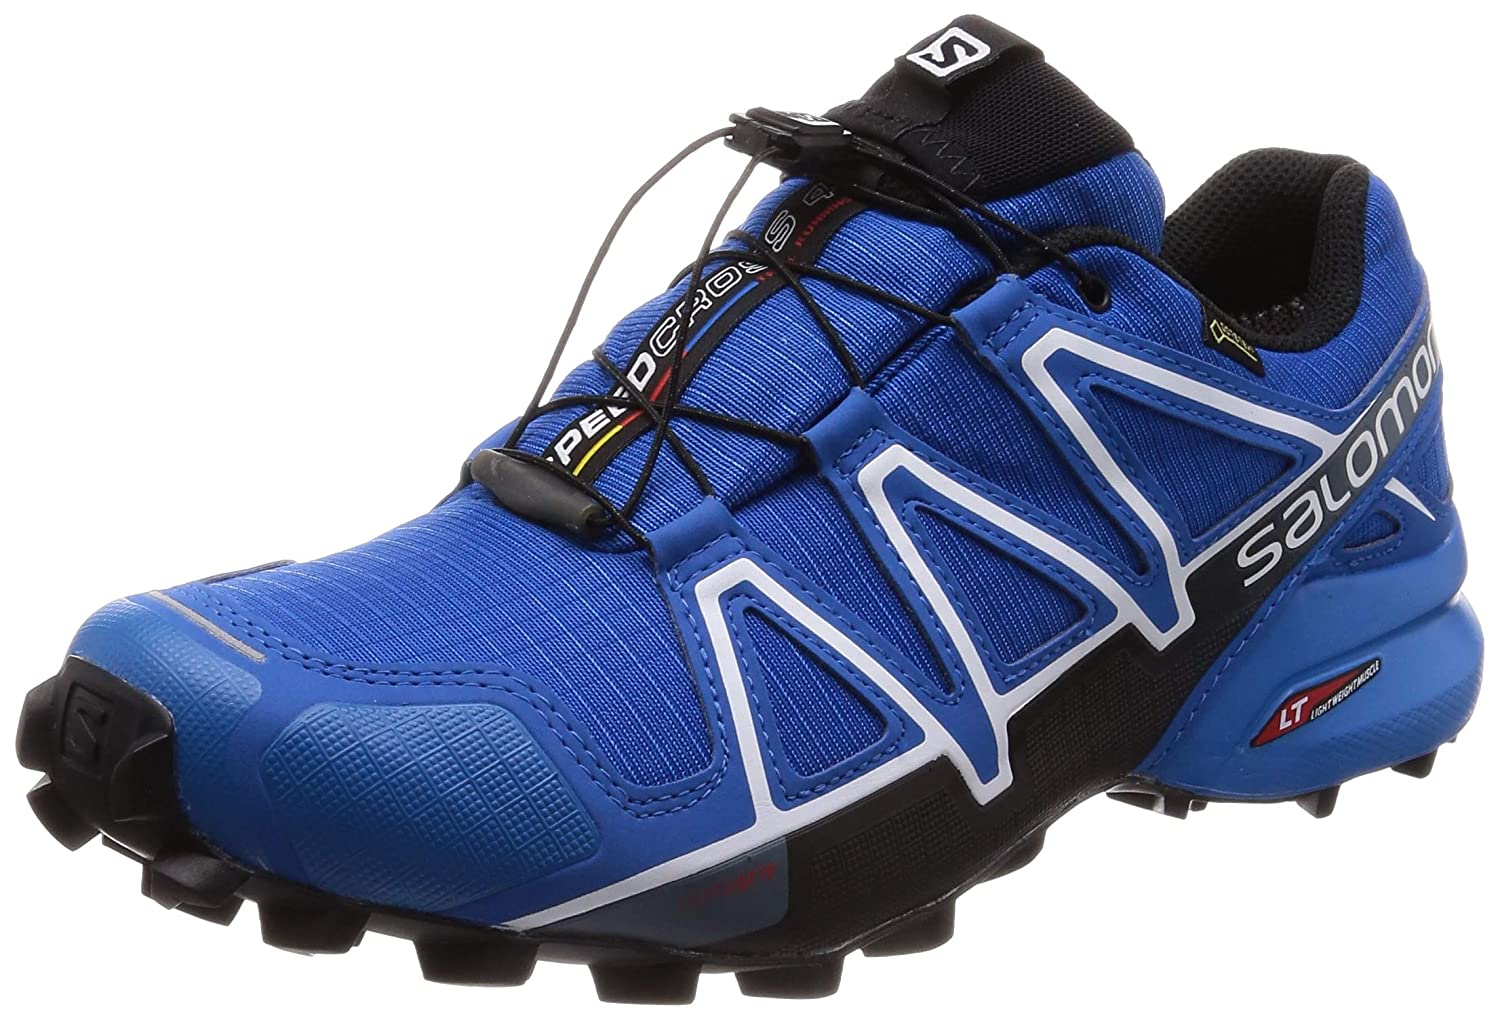 dc3779cffff Salomon Men's Speedcross 4 Gtx Trail Running Shoes